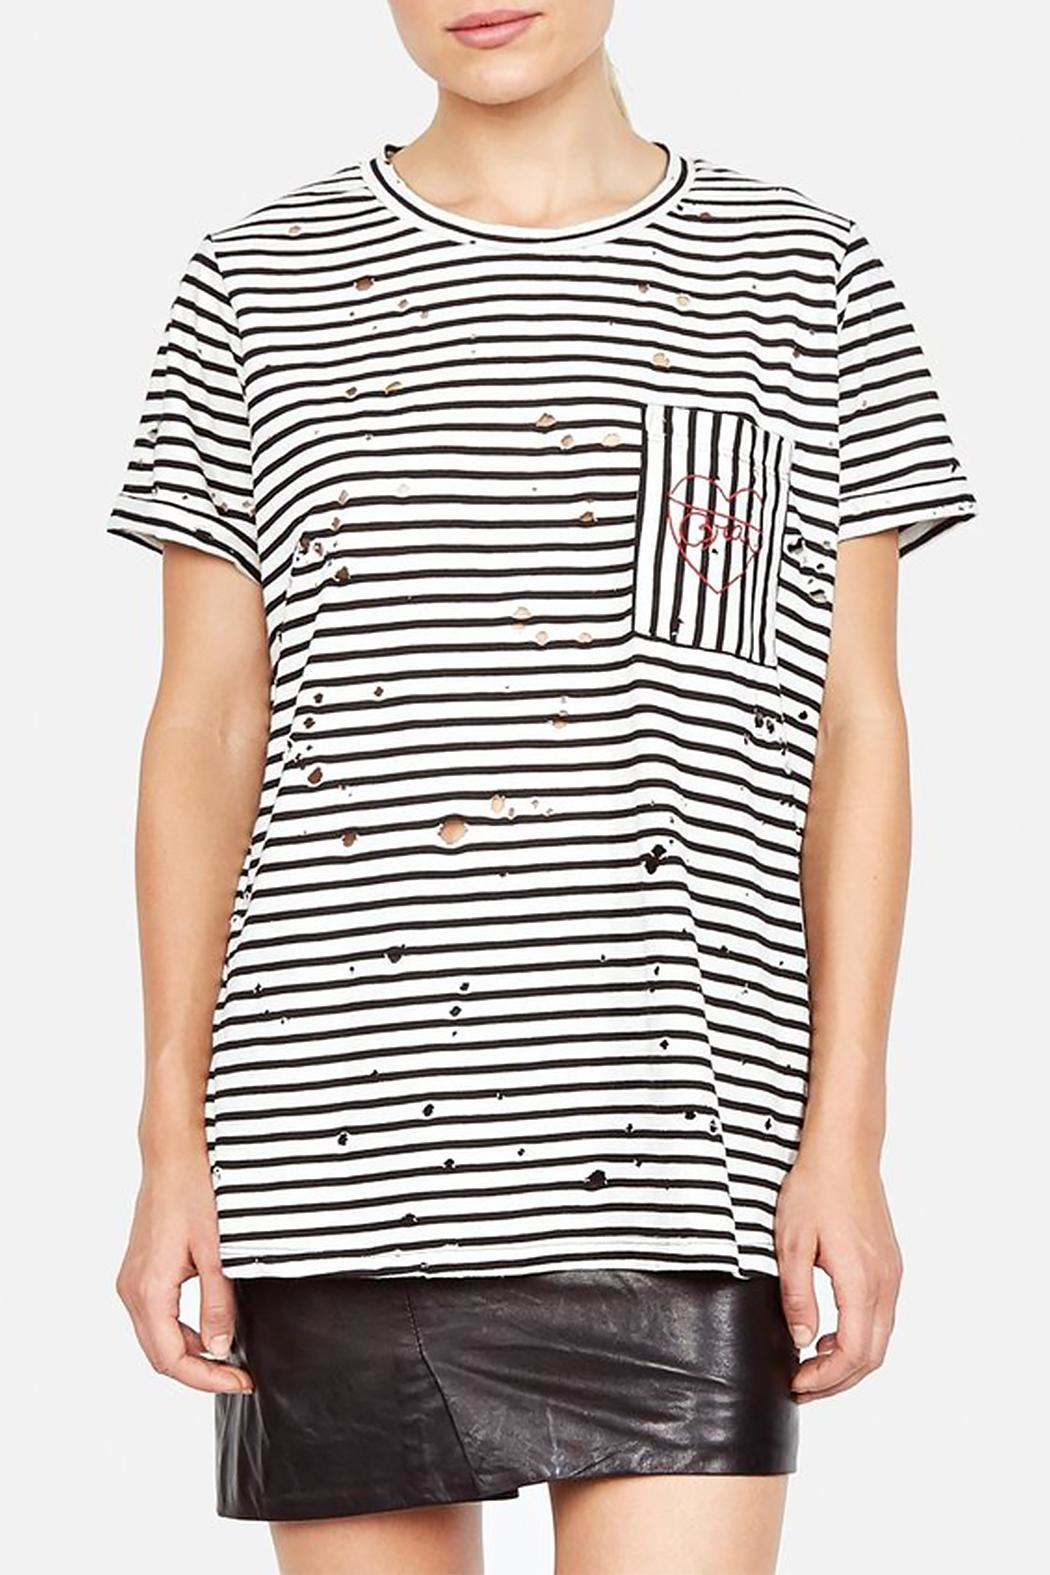 Lauren Moshi Love Distressed Tee - Side Cropped Image